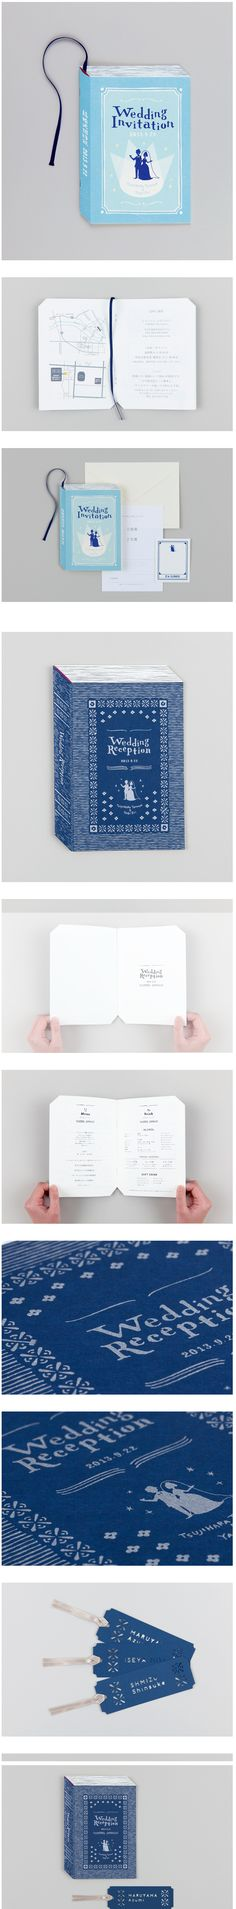 Wedding card design layout fonts ideas for 2019 Wedding Invitation Packages, Wedding Invitations, Invites, Wedding Stationary, Wedding Card Design, Wedding Cards, Wedding Paper, Wedding Designs, Layout Design